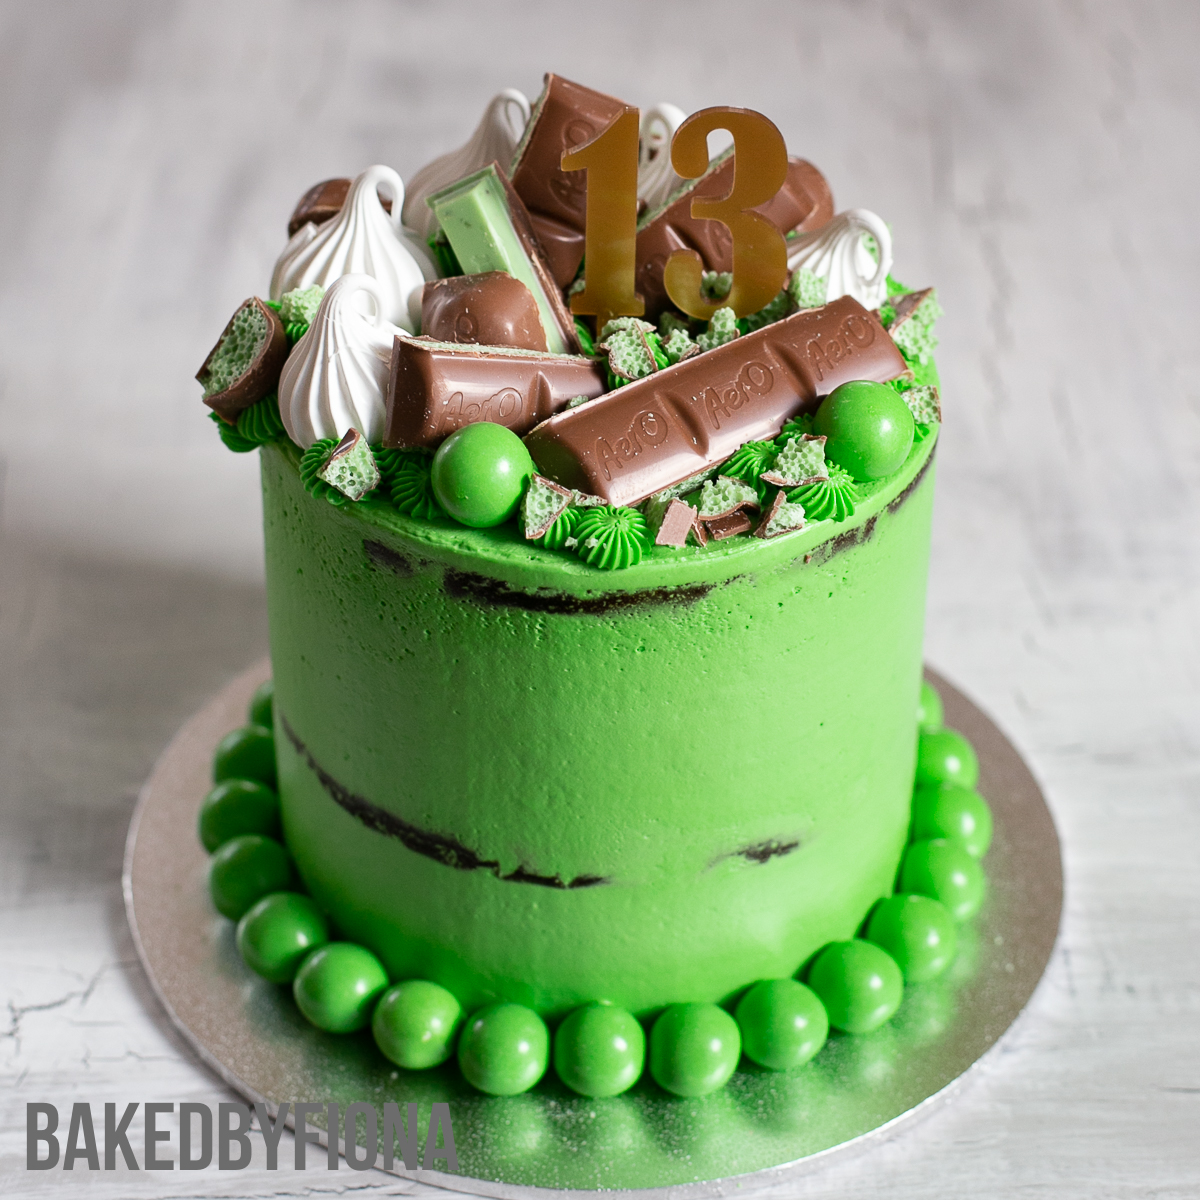 Sydney Cakes, Baked By Fiona choc mint cake, a 6 inch midi cake